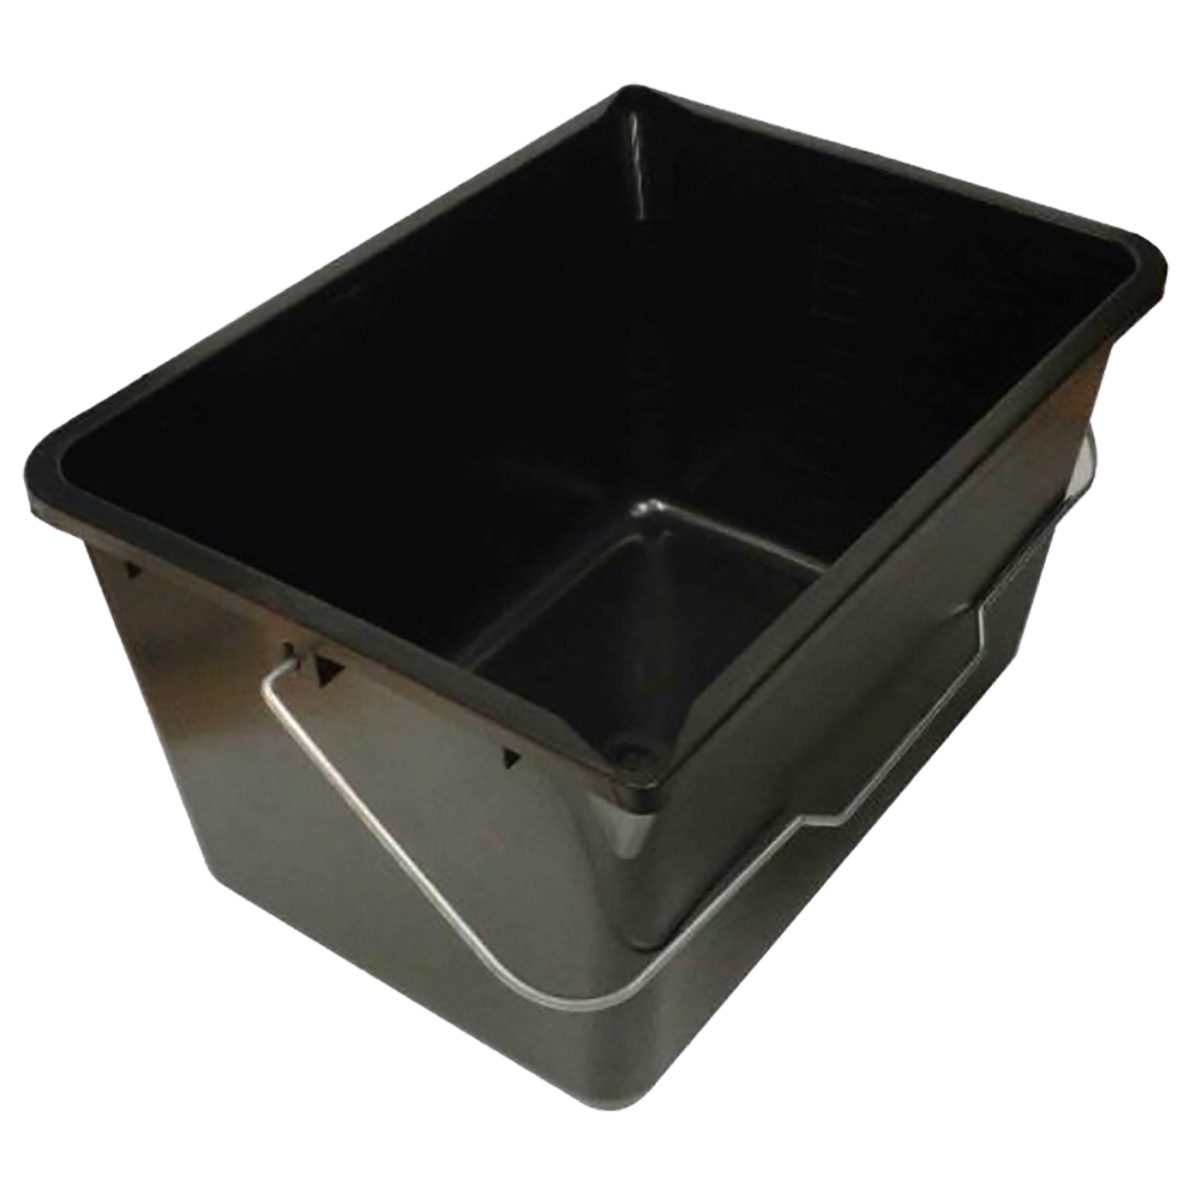 14081 - Builders Bucket 12L Rectangular